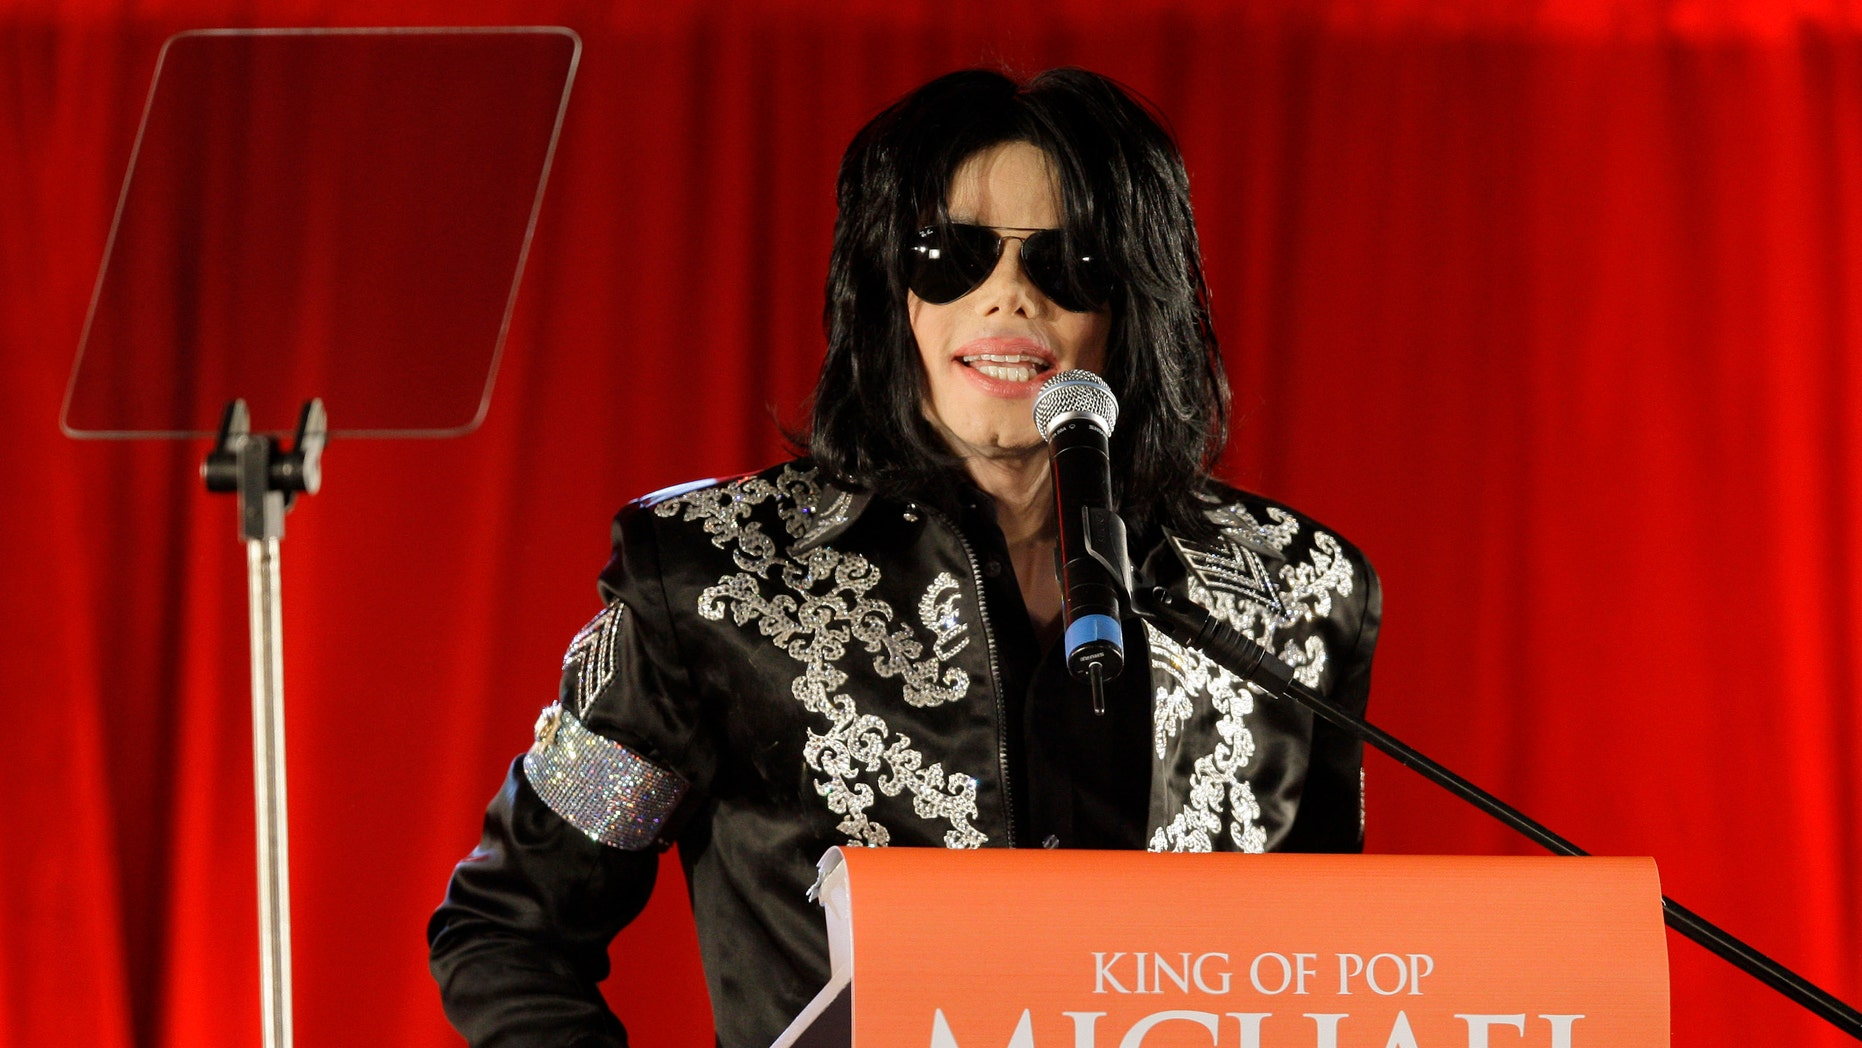 March 5, 2009. Michael Jackson announces that he is set to play a series of comeback concerts at the London O2 Arena in July, which he announced at a press conference at the London O2 Arena. A judge heard arguments on Friday, Jan. 3, 2014, from lawyers for Jackson's mother, Katherine Jackson, who is seeking a new trial in her negligent hiring case against concert promoter AEG Live LLC.